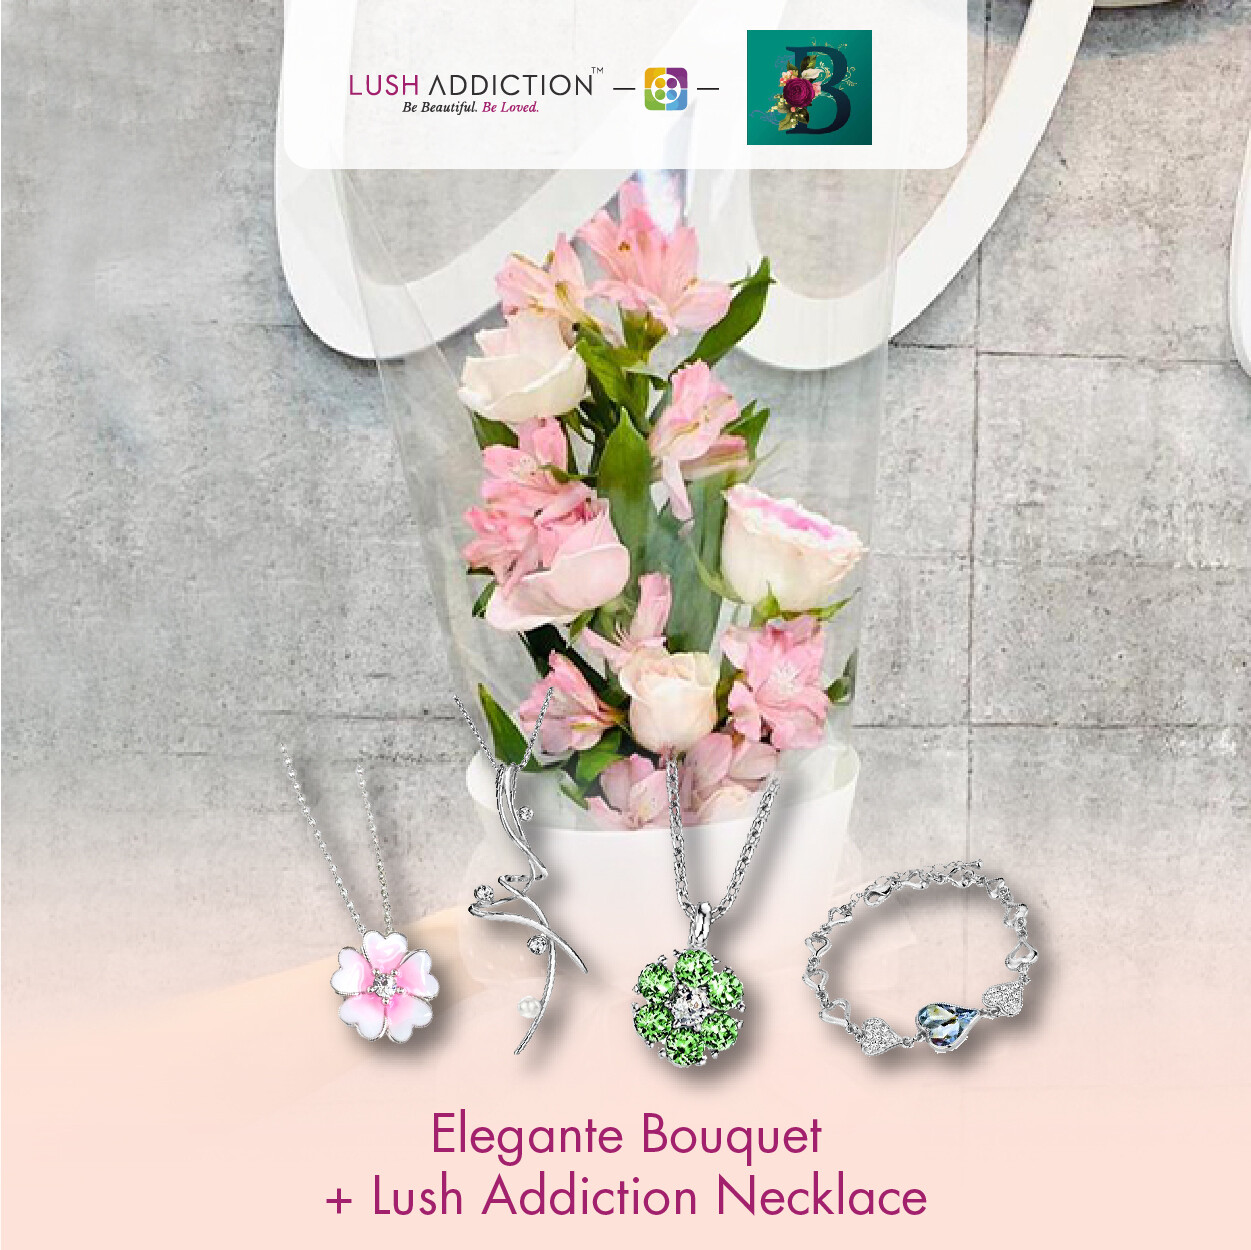 Elegante Bouquet + Lush Addiction Necklace (By: The Bliss Florist from Melaka)